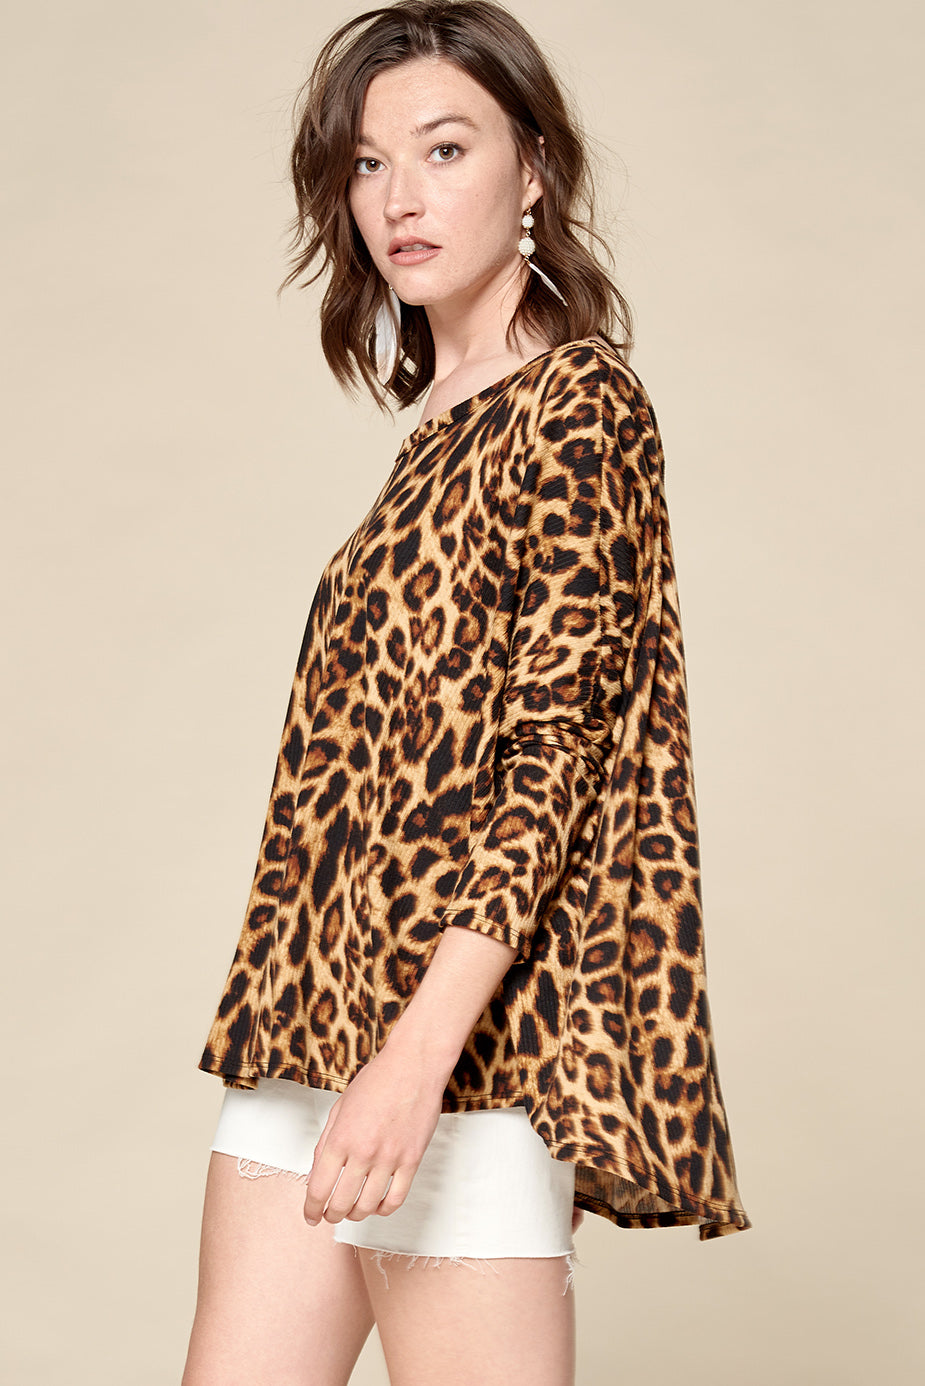 Lively in Leopard Top - Top - MIA Boutique LLC